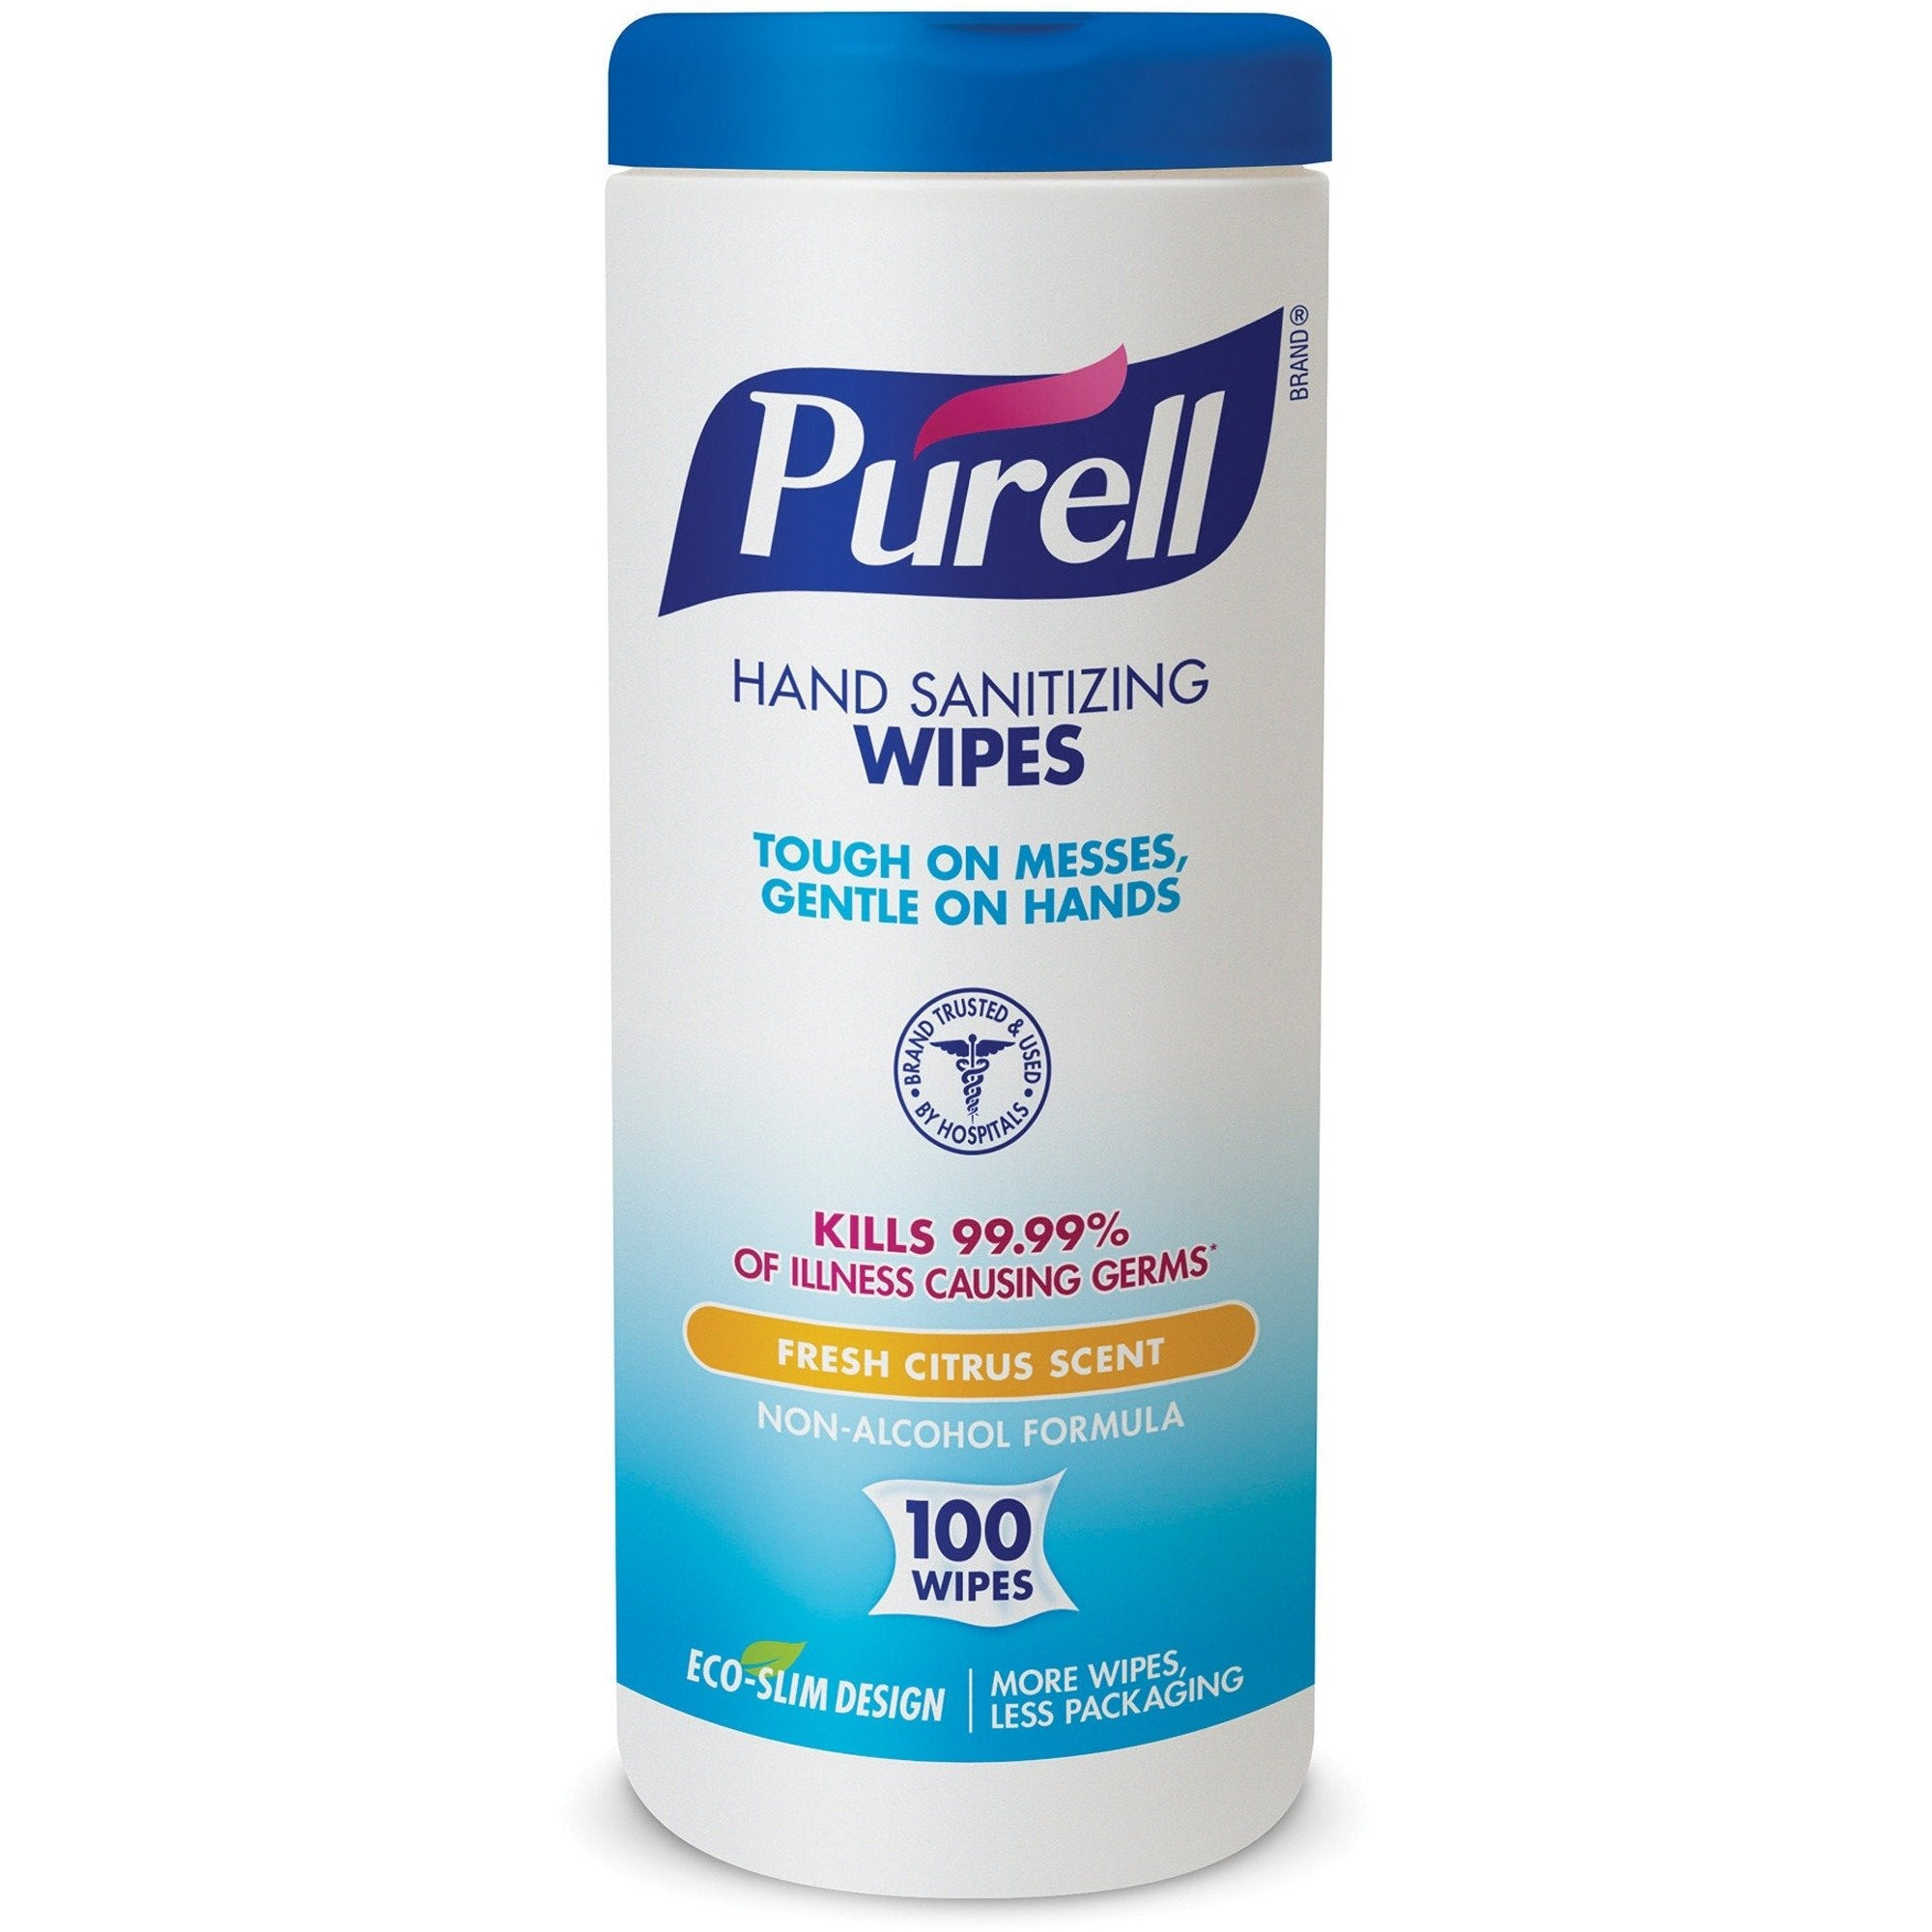 100 Purell® Disinfecting Wipes - Fresh Citrus Scent - 1 canister of 100 wipes - kills 99.99% of germs - Brooklyn Equipment